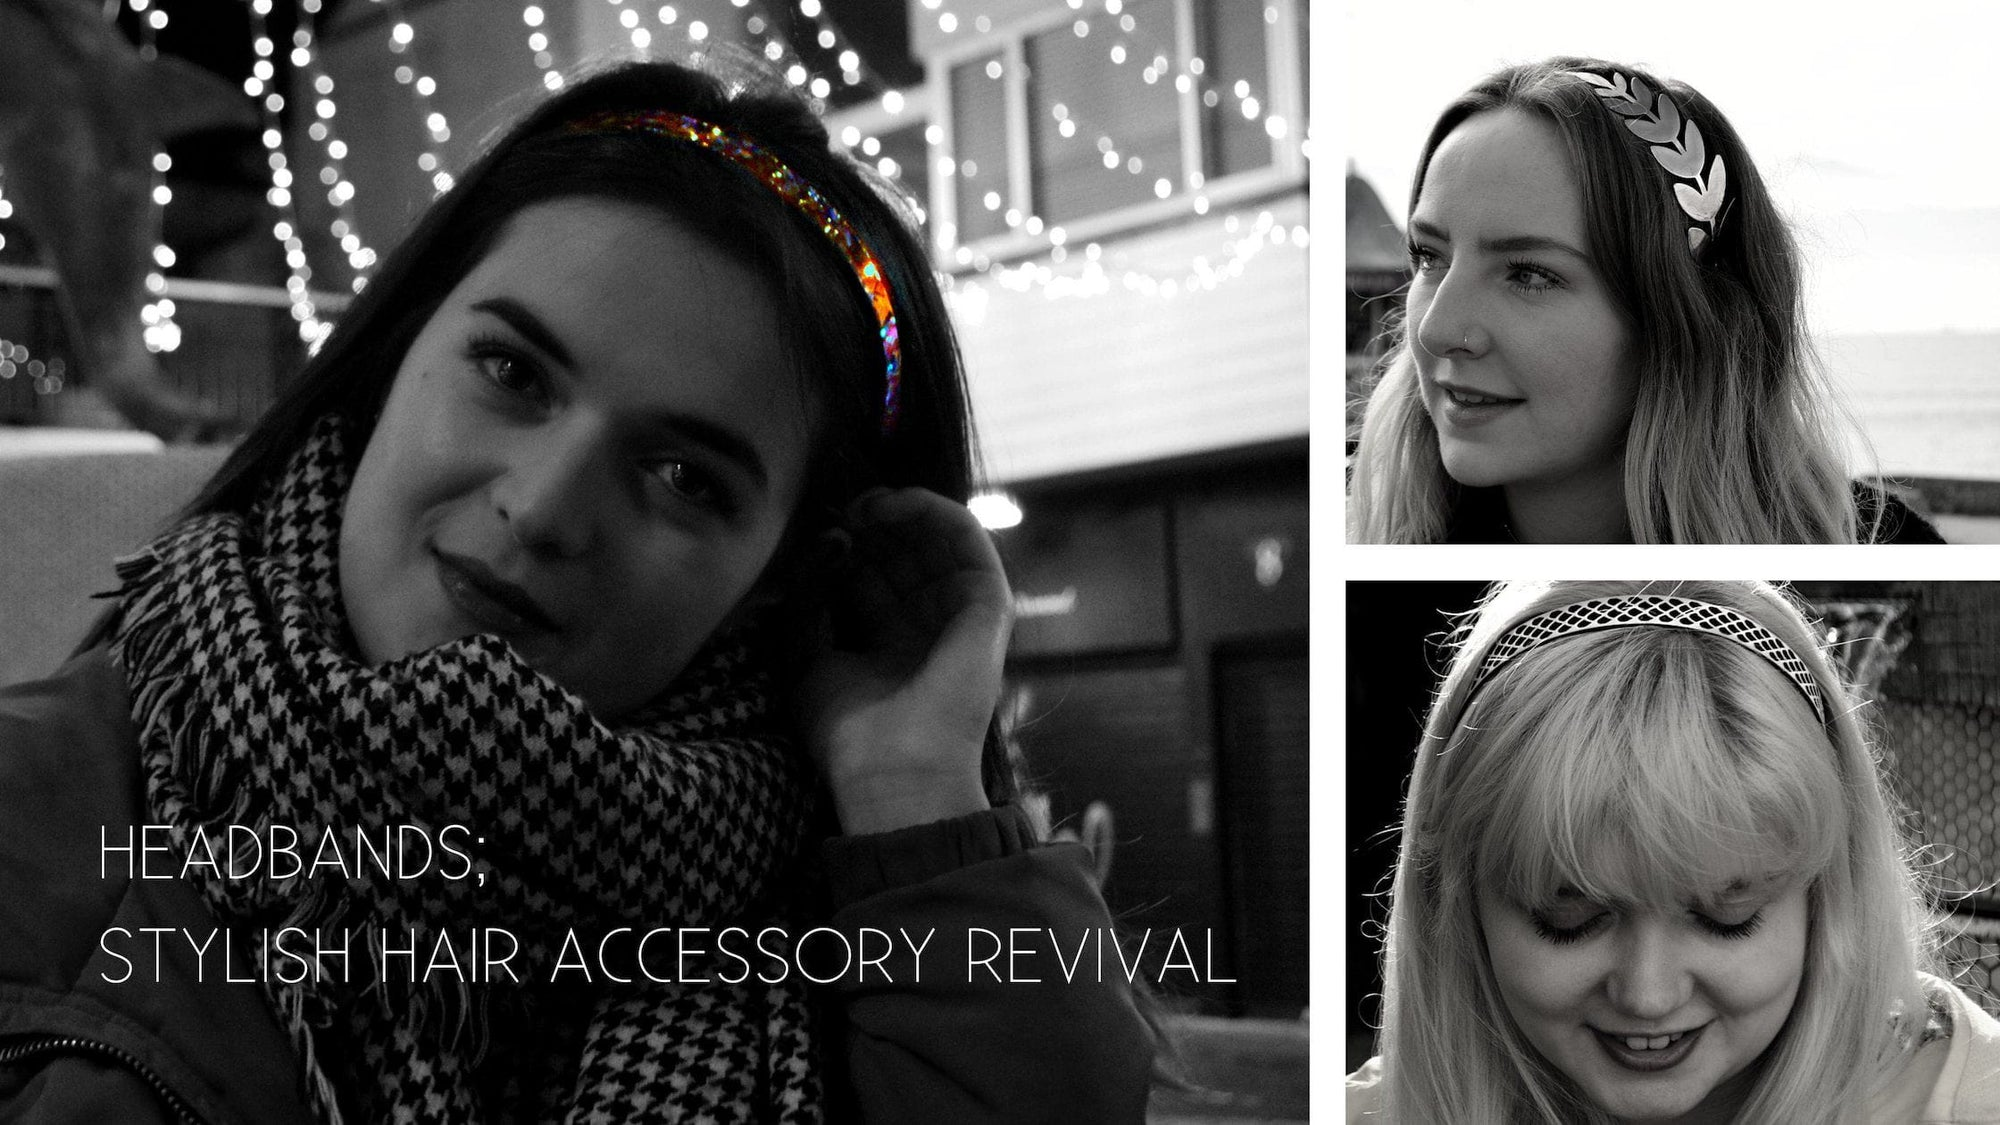 Headbands; Stylish Hair Accessory Revival Blog Post | Tegen Accessories